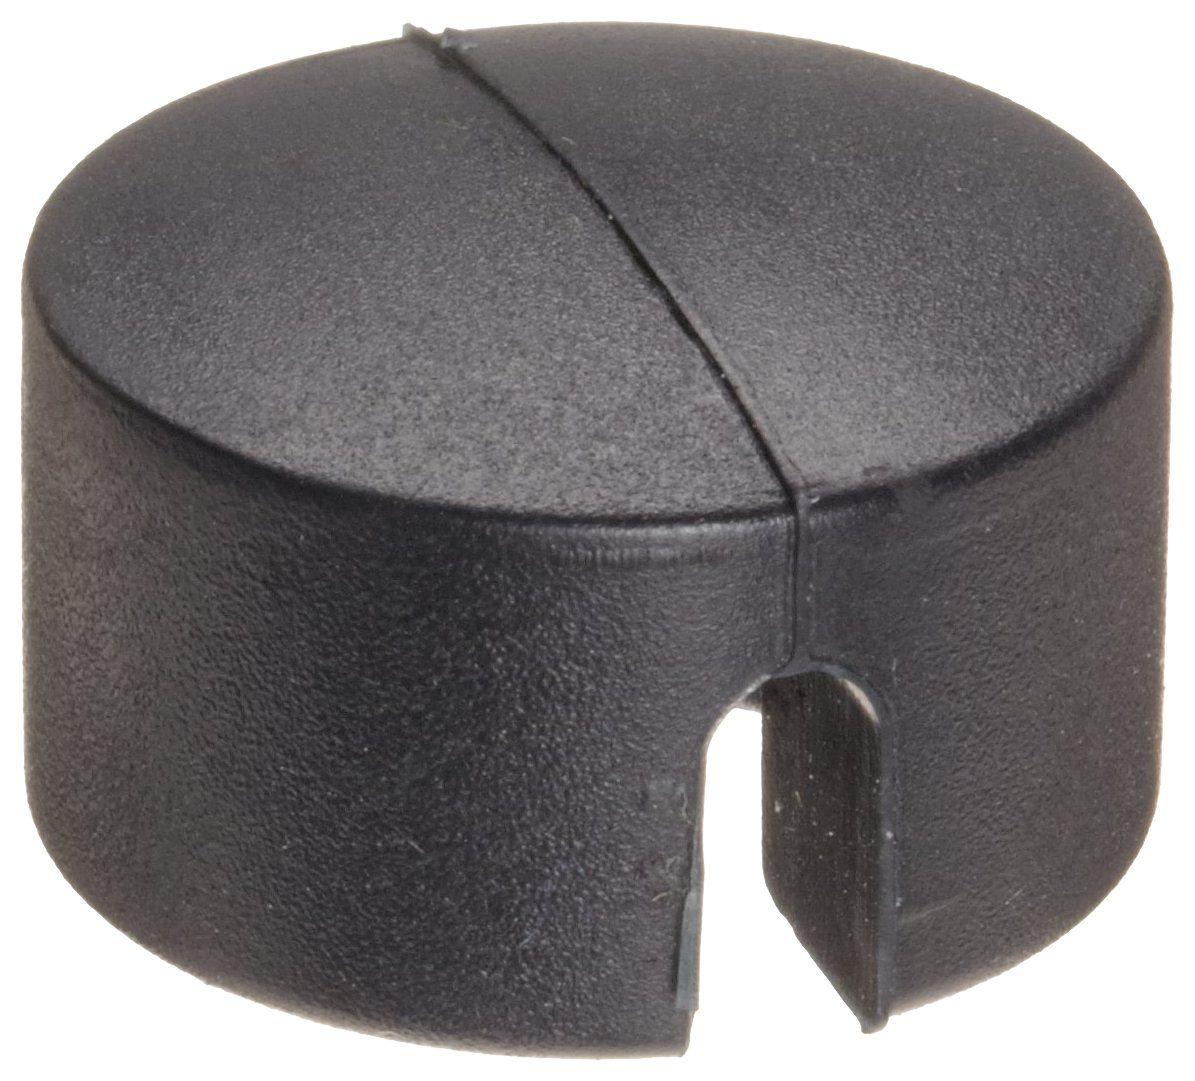 Fastlane CPRPKIT.75-18 18 Pieces Optional Anti-Slip Rubber Pad Kit for FL1X1.5 1 Canner Drop Over Protector